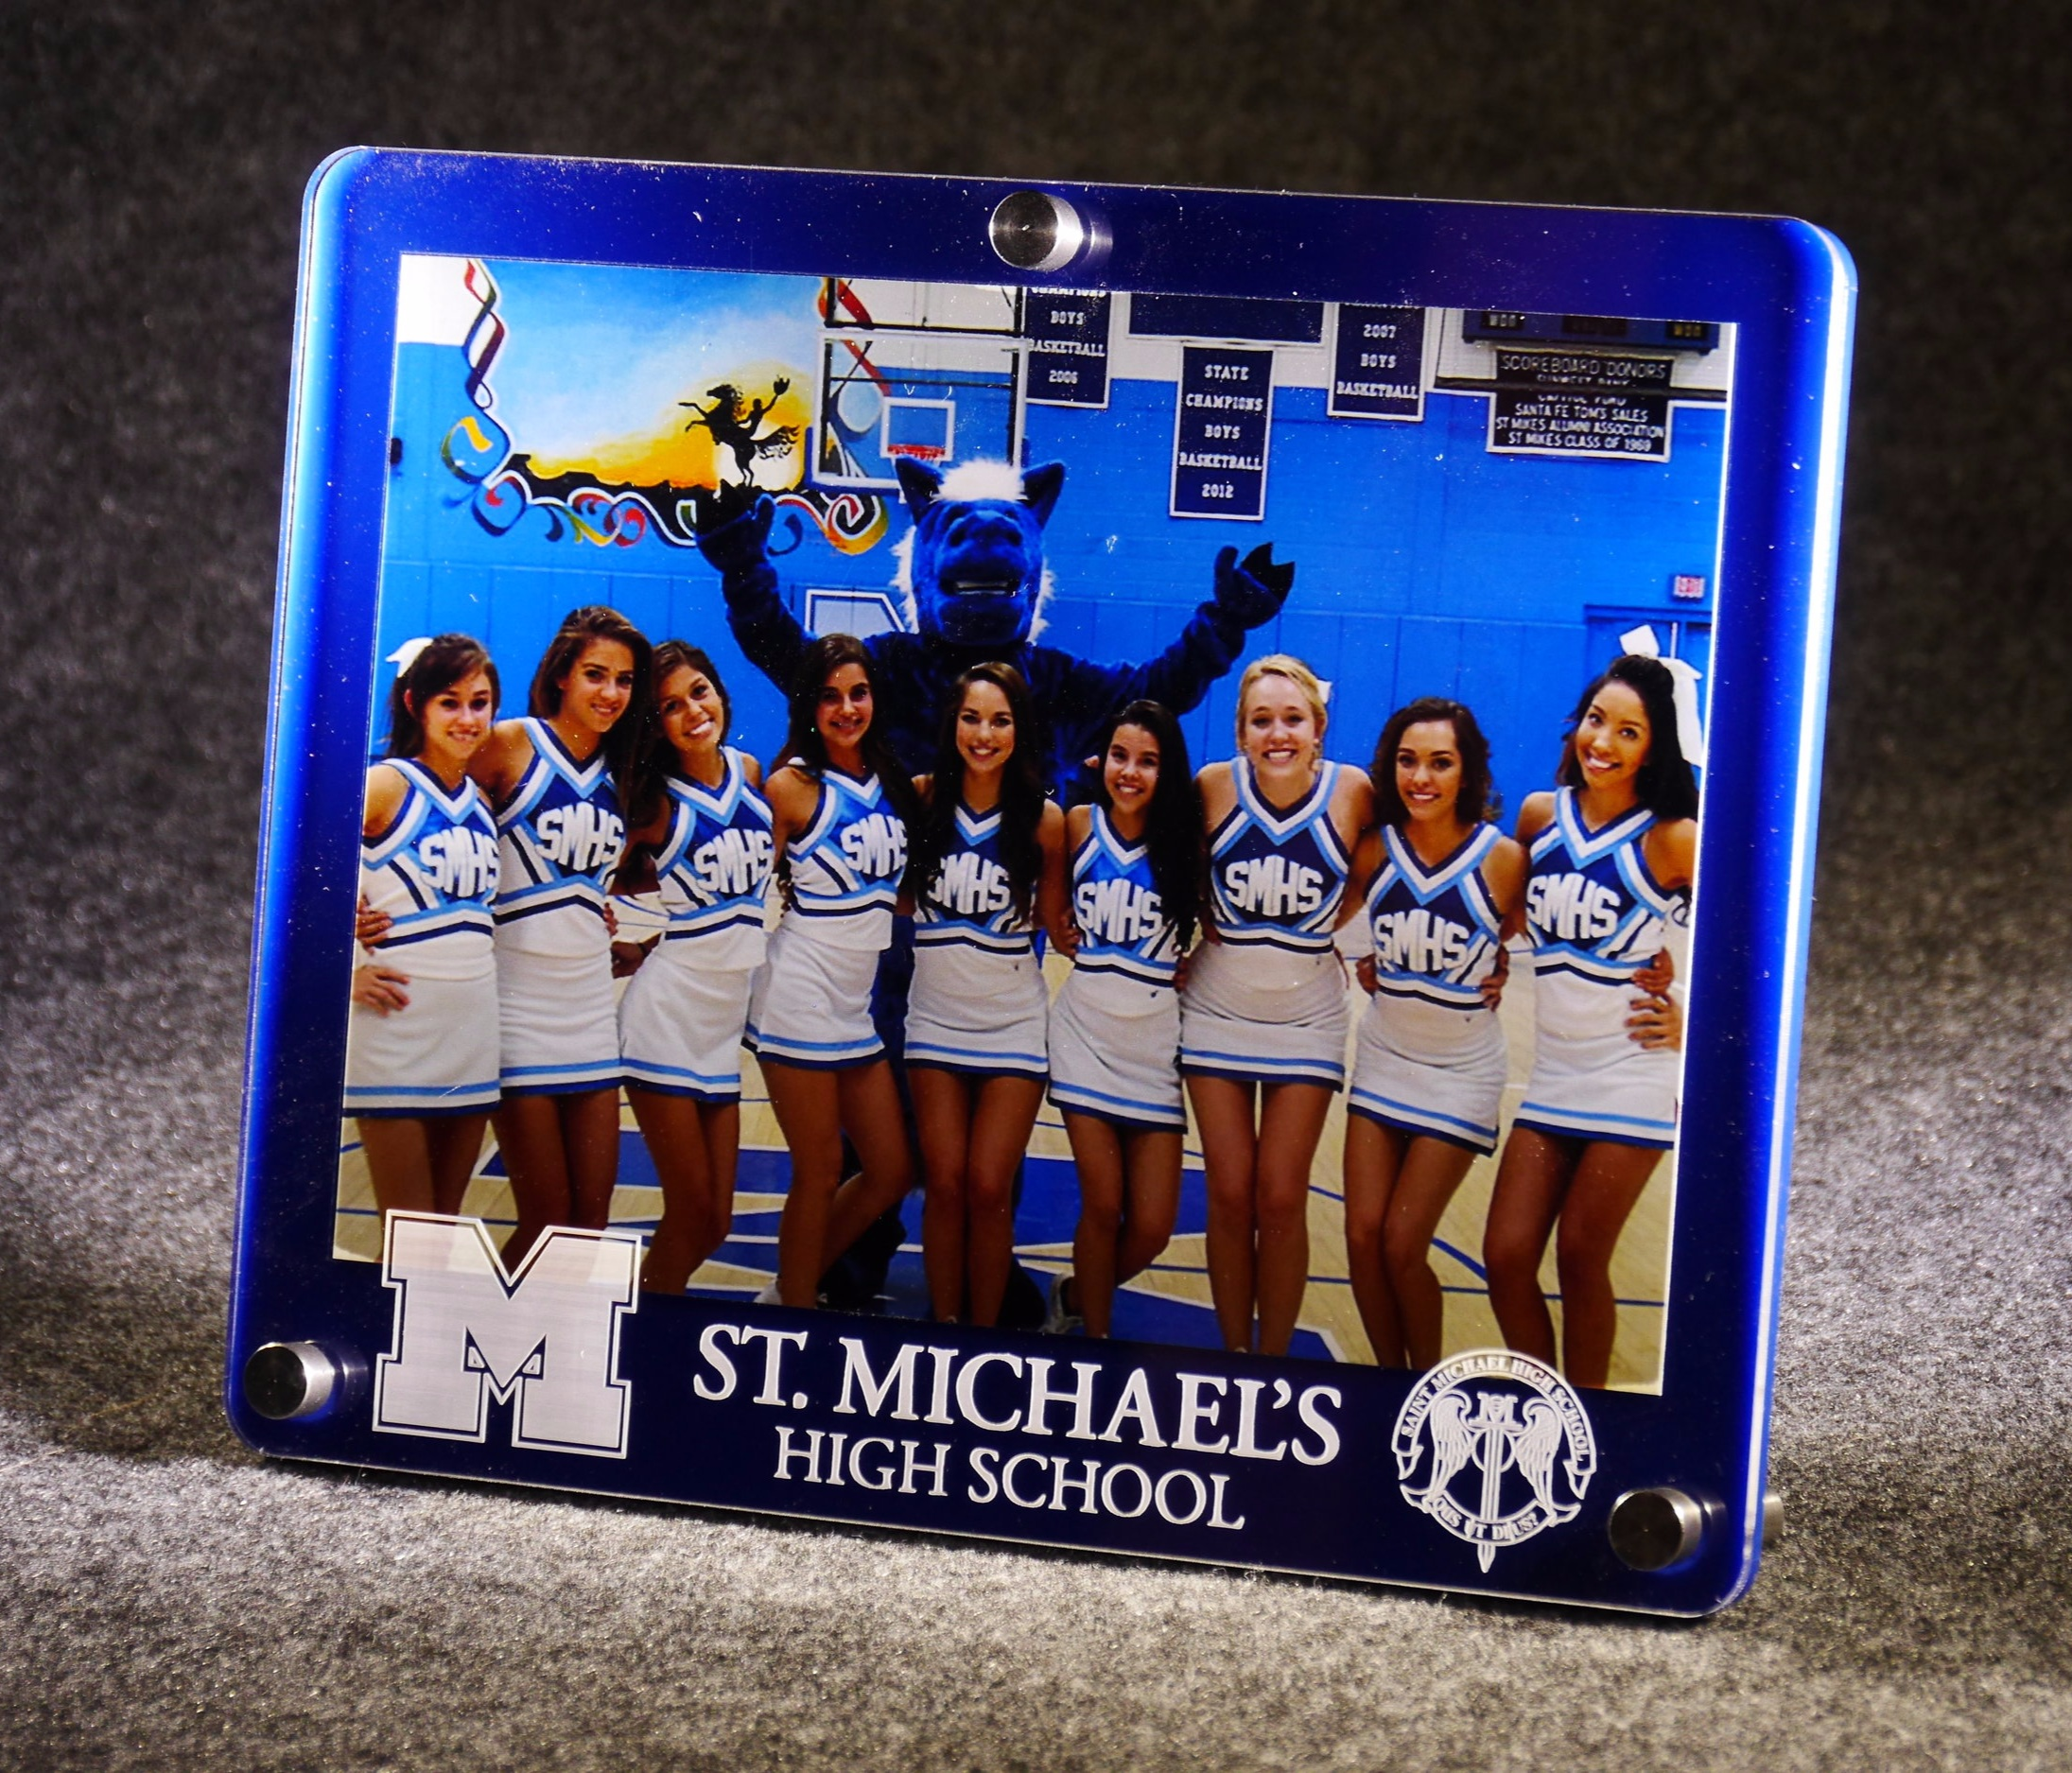 5x7 landscape frame - 2-layer acrylic, in team colors with logo and seal  Contact us for pricing information.